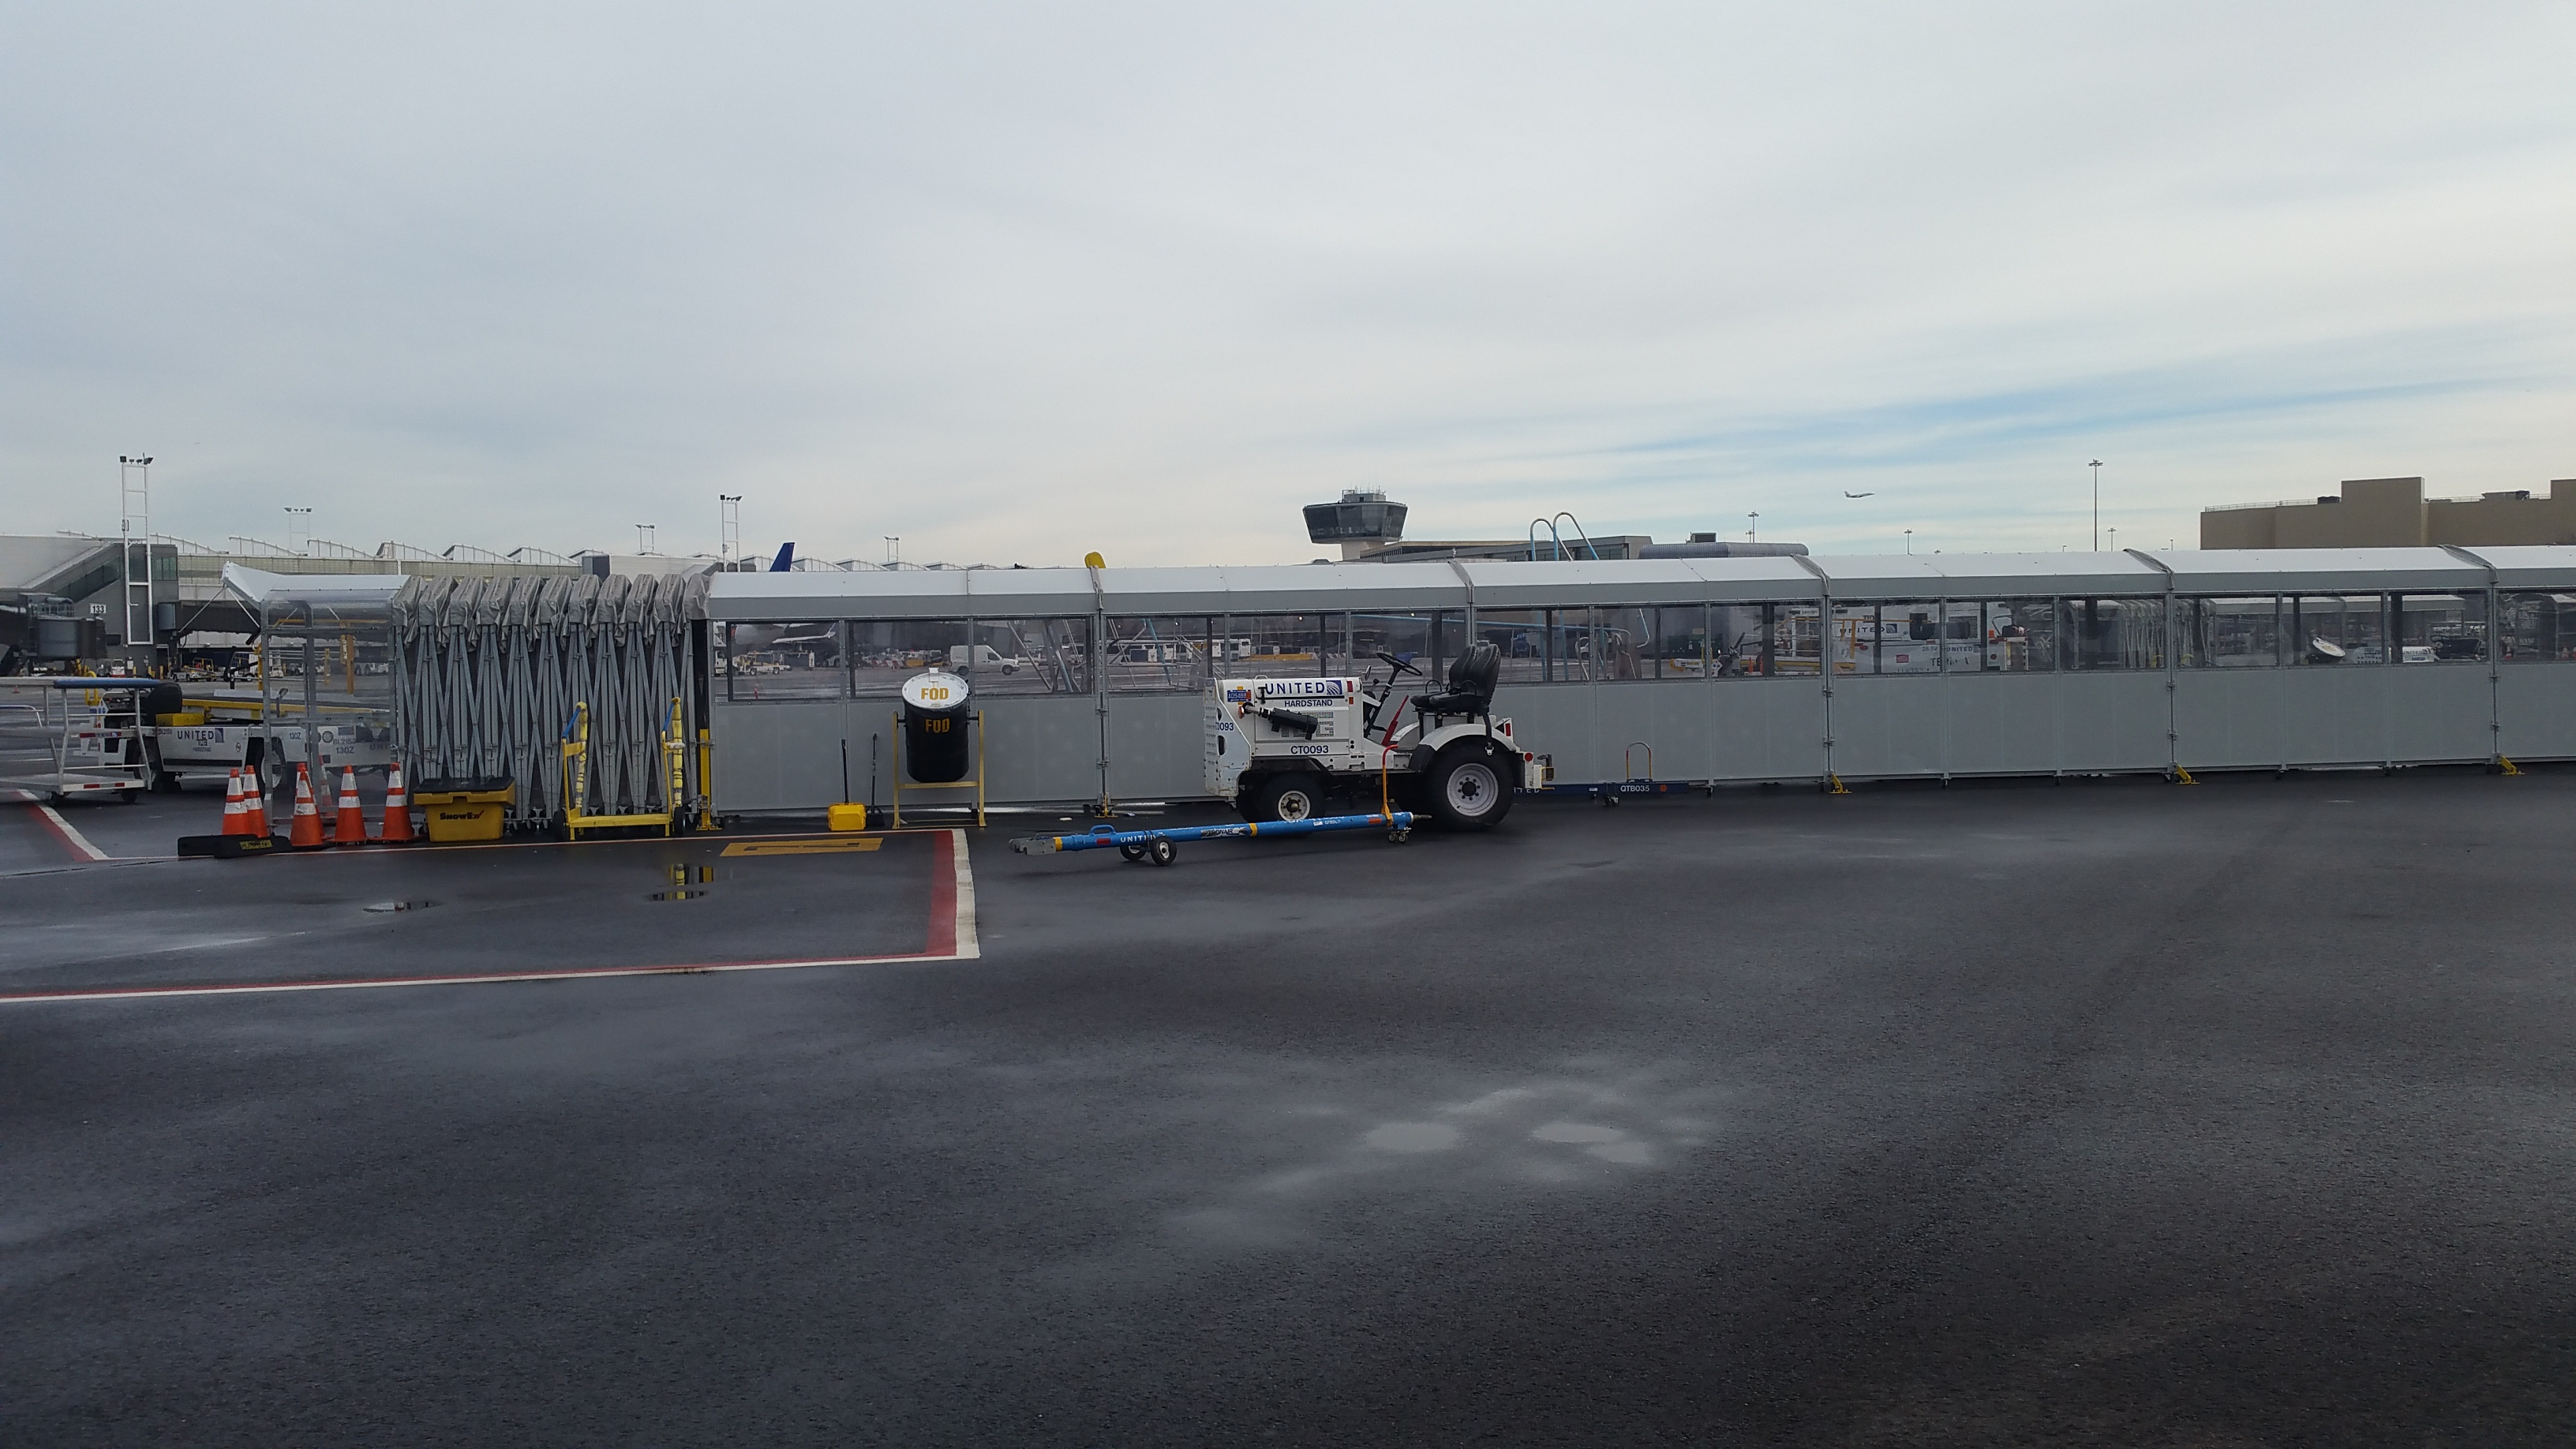 commute-a-walk, ground boarding equipment, east island aviation, ewr, newark airport, united airlines